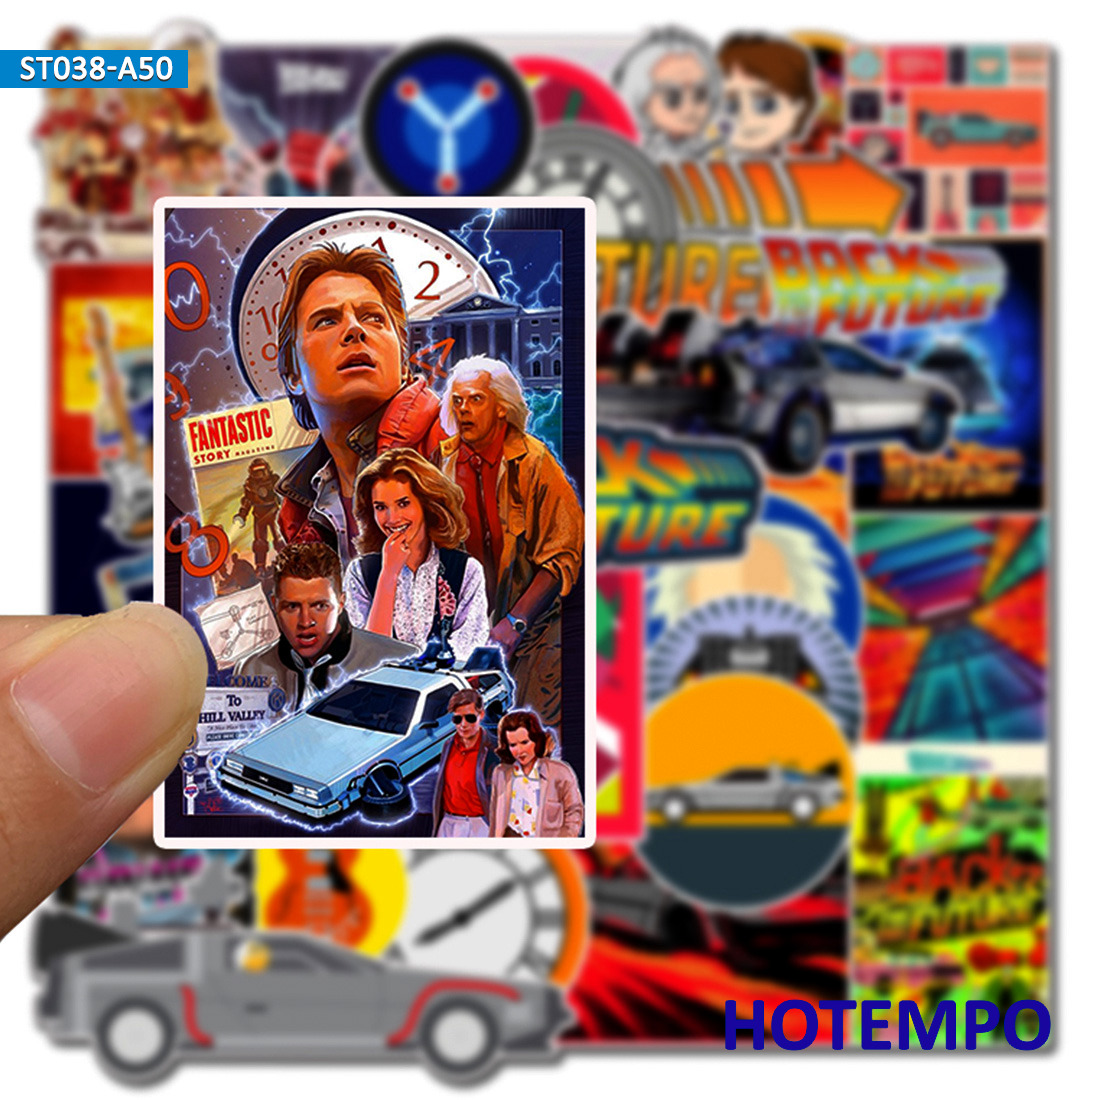 50pcs Classic Movie Back To The Future Stickers For Mobile Phone Laptop Luggage Case Skateboard Bike Helmet Style Decal Stickers